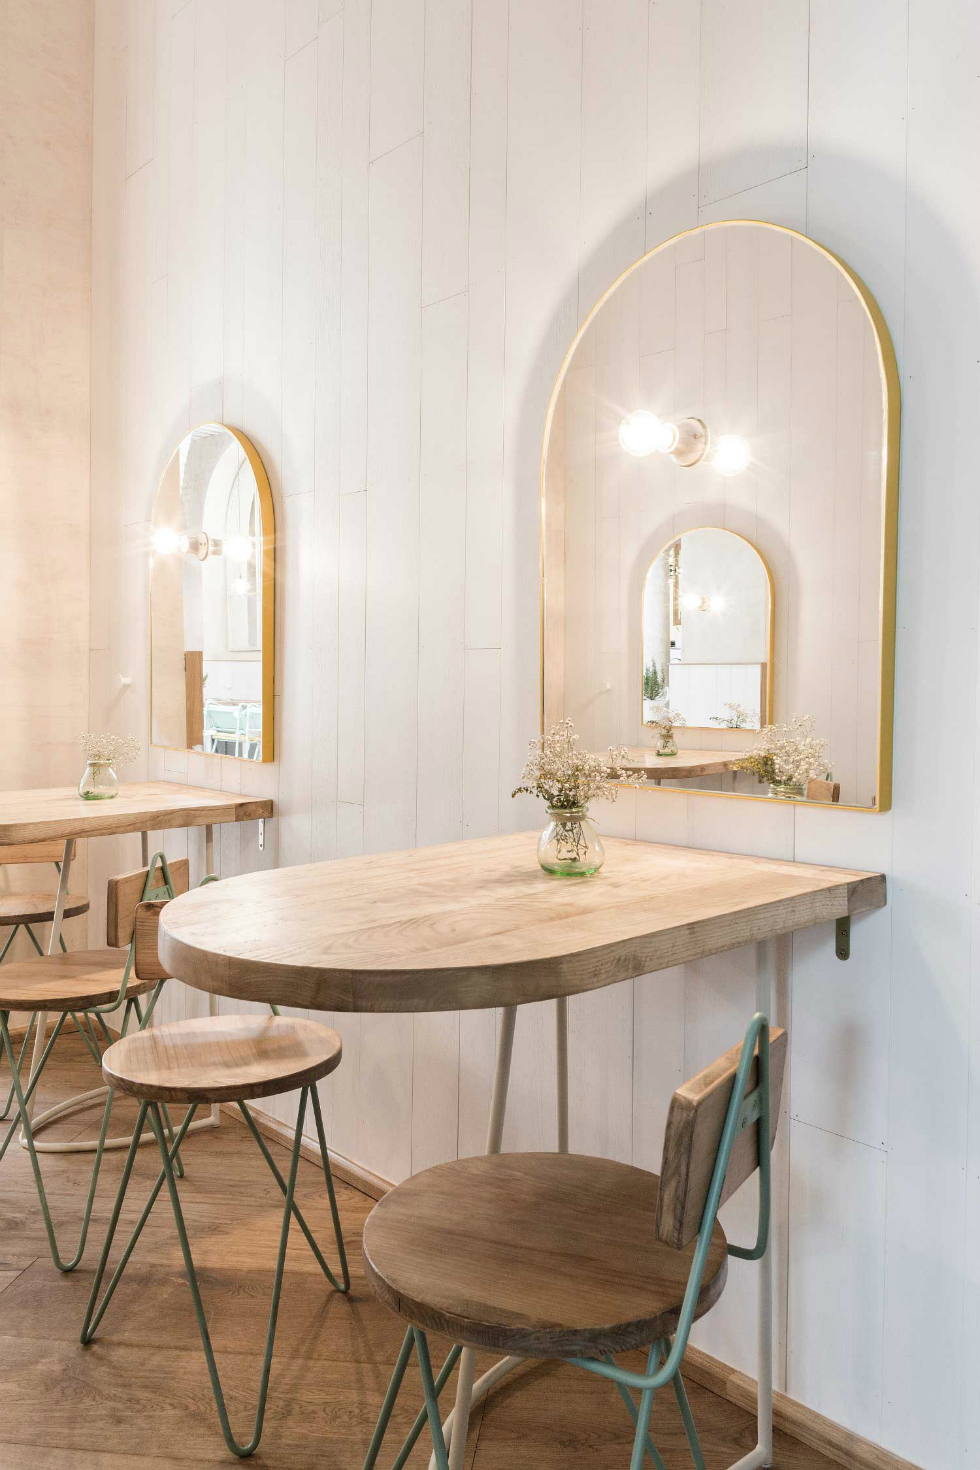 Spanish restaurant with a great design El Pintón - 3 spanish restaurantSpanish restaurant with a great design: El PintónSpanish restaurant with a great design El Pint  n 3